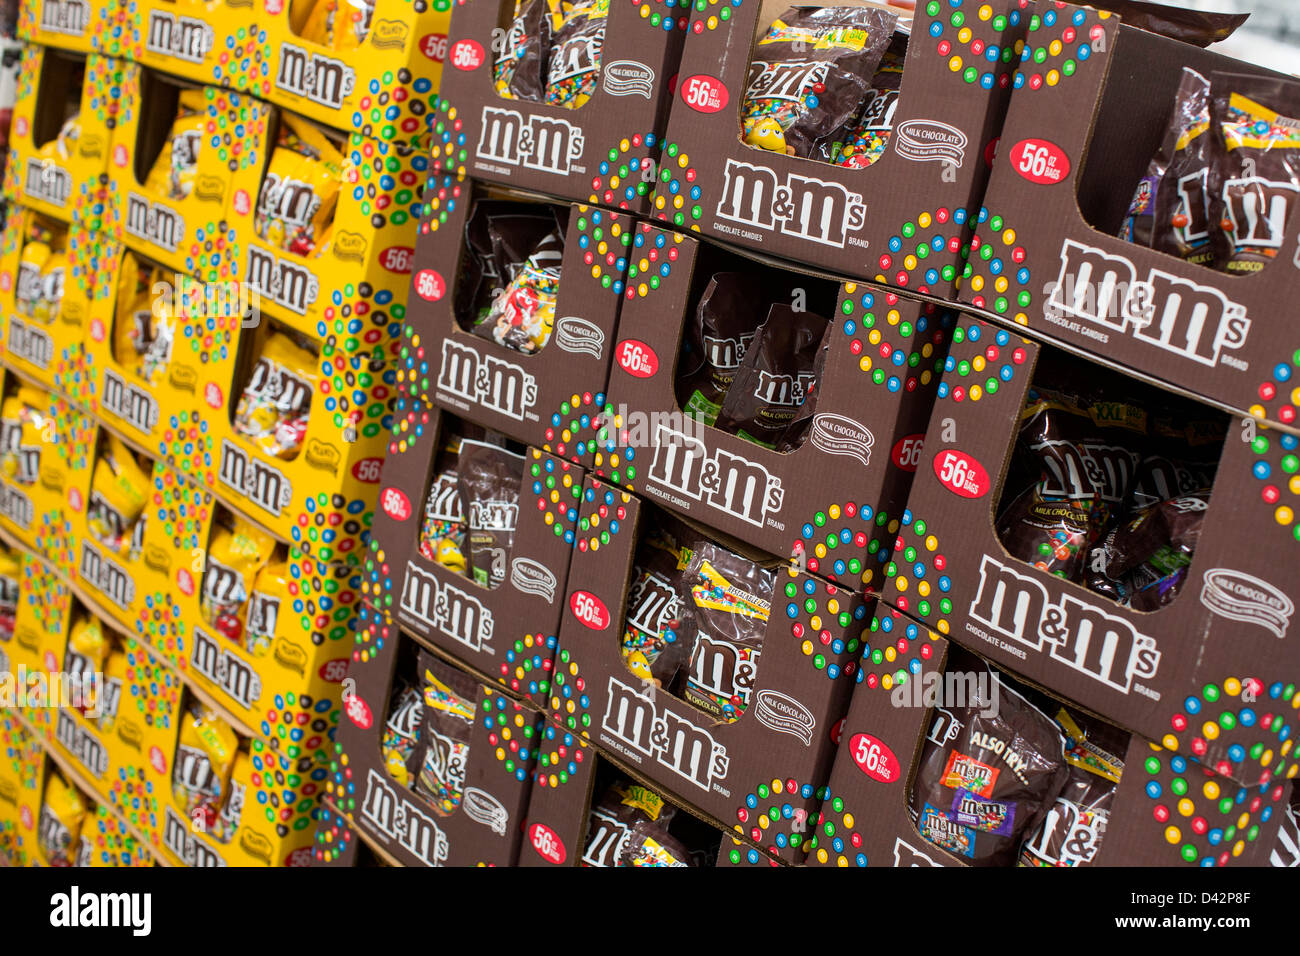 Mms on display at a costco wholesale warehouse club stock photo mms on display at a costco wholesale warehouse club stock photo 54151119 alamy thecheapjerseys Images